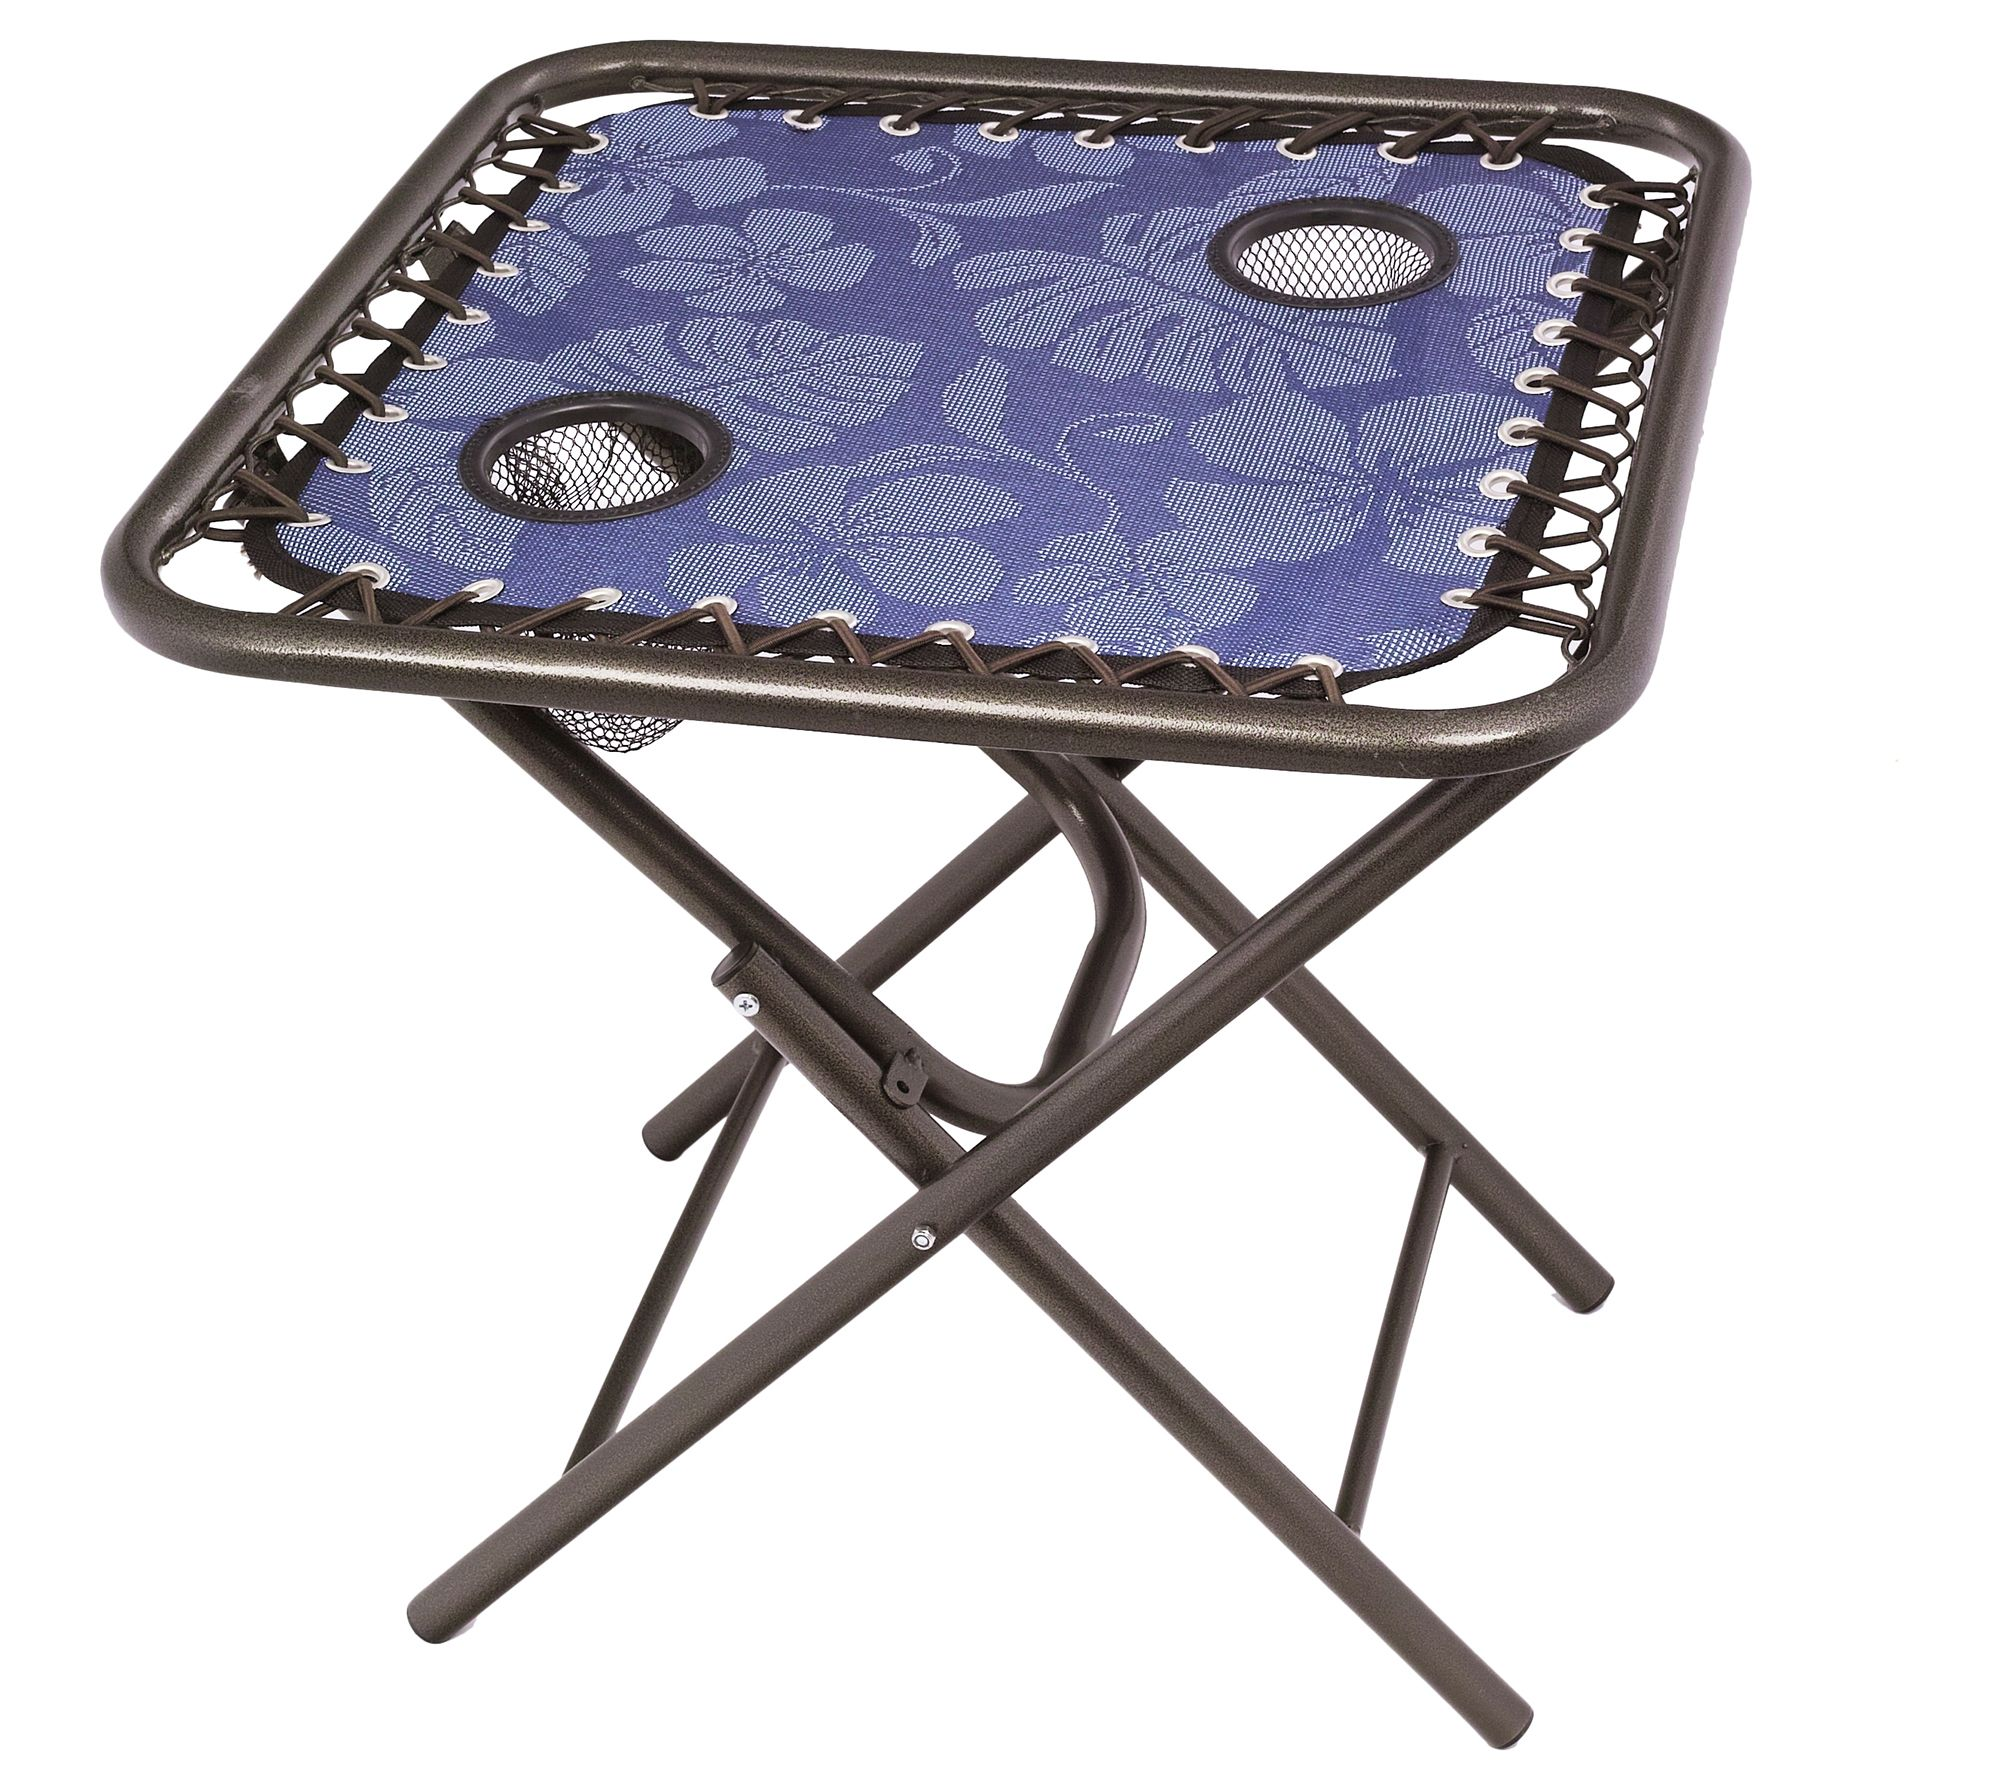 Bliss Hammocks Foldable Sling Side Table Page 1 — QVC